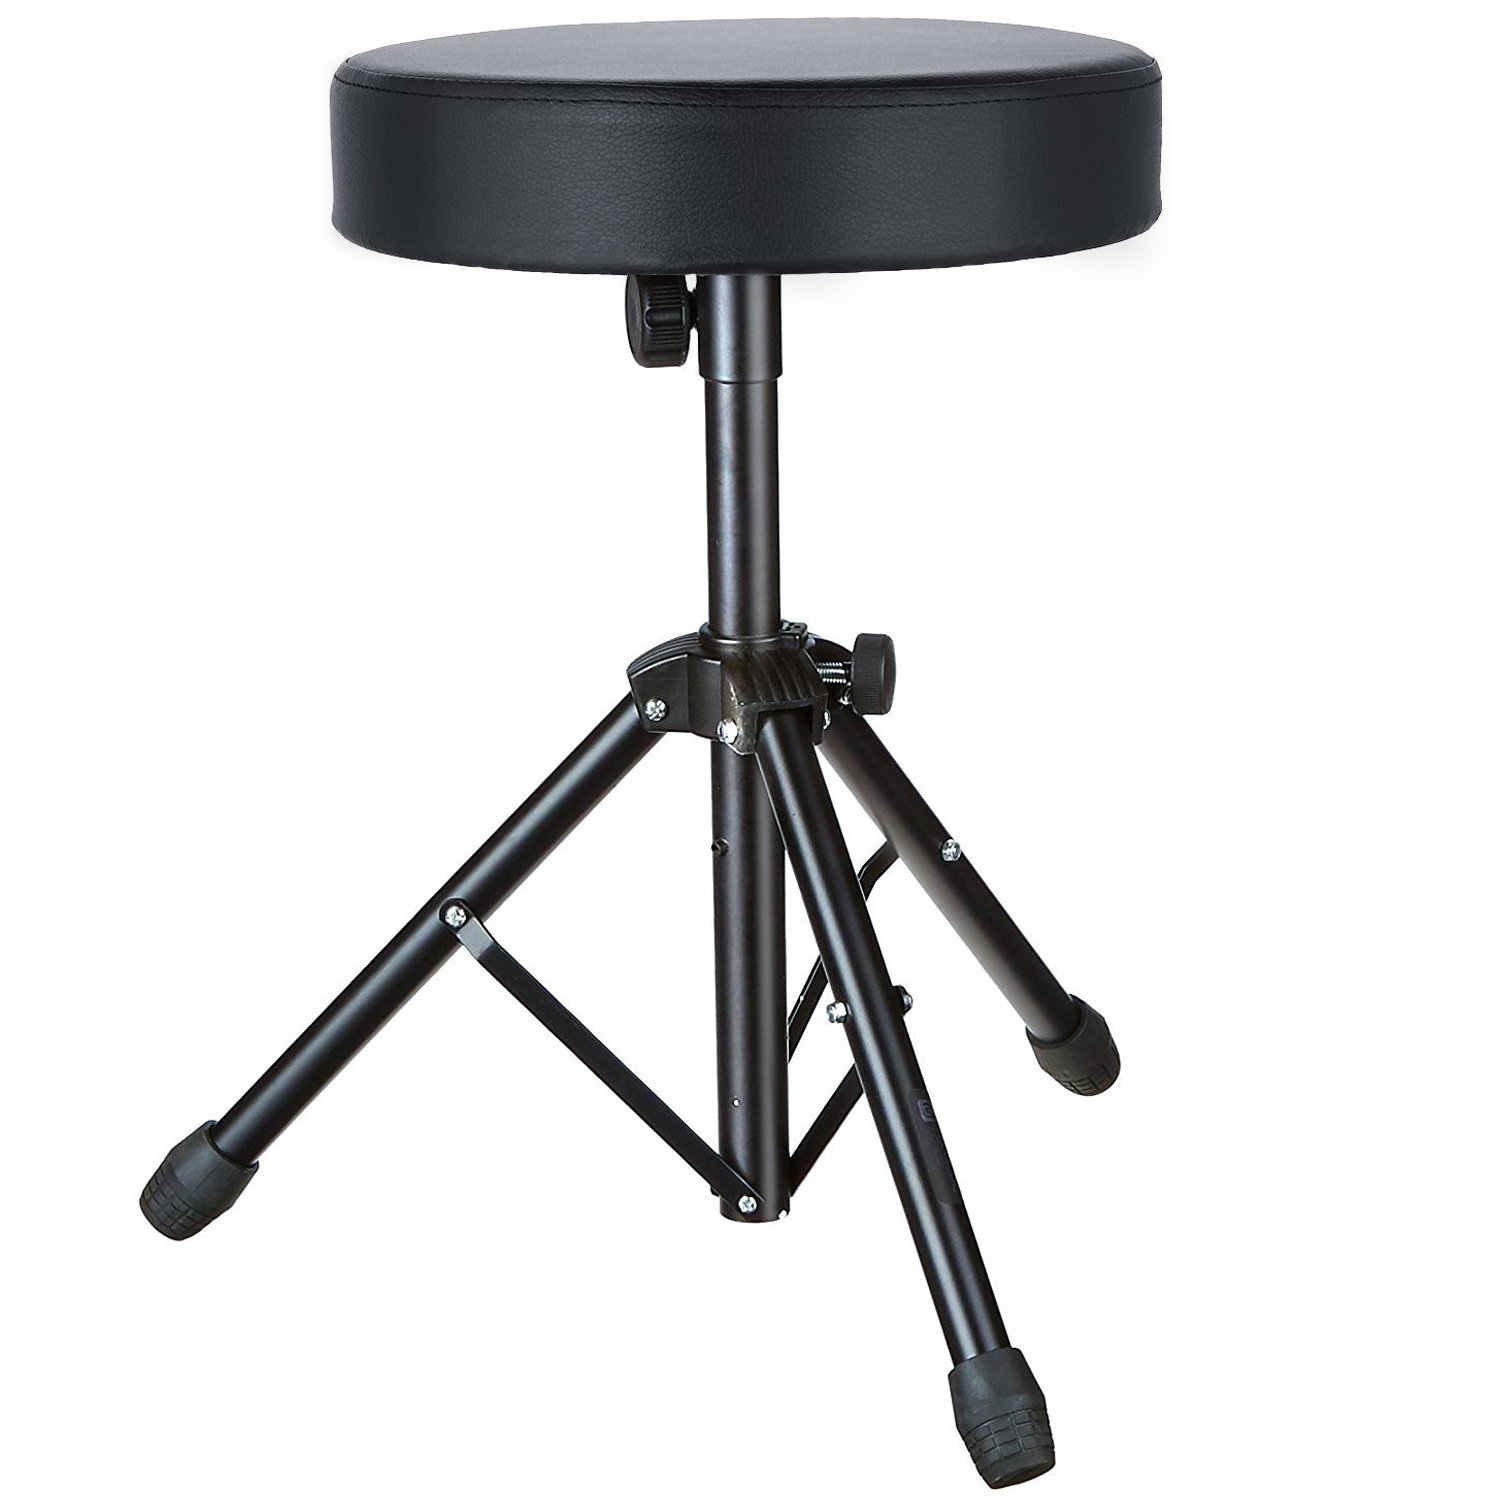 Coocheer Drum Throne Rotatable Metal Drum Seat Professional Drum Stool for Guitars Bass Keyboards Drums Recording DJ Band & Orchestra Live Sound Soft Padded Throne Seat to Kids&Adult (Black)